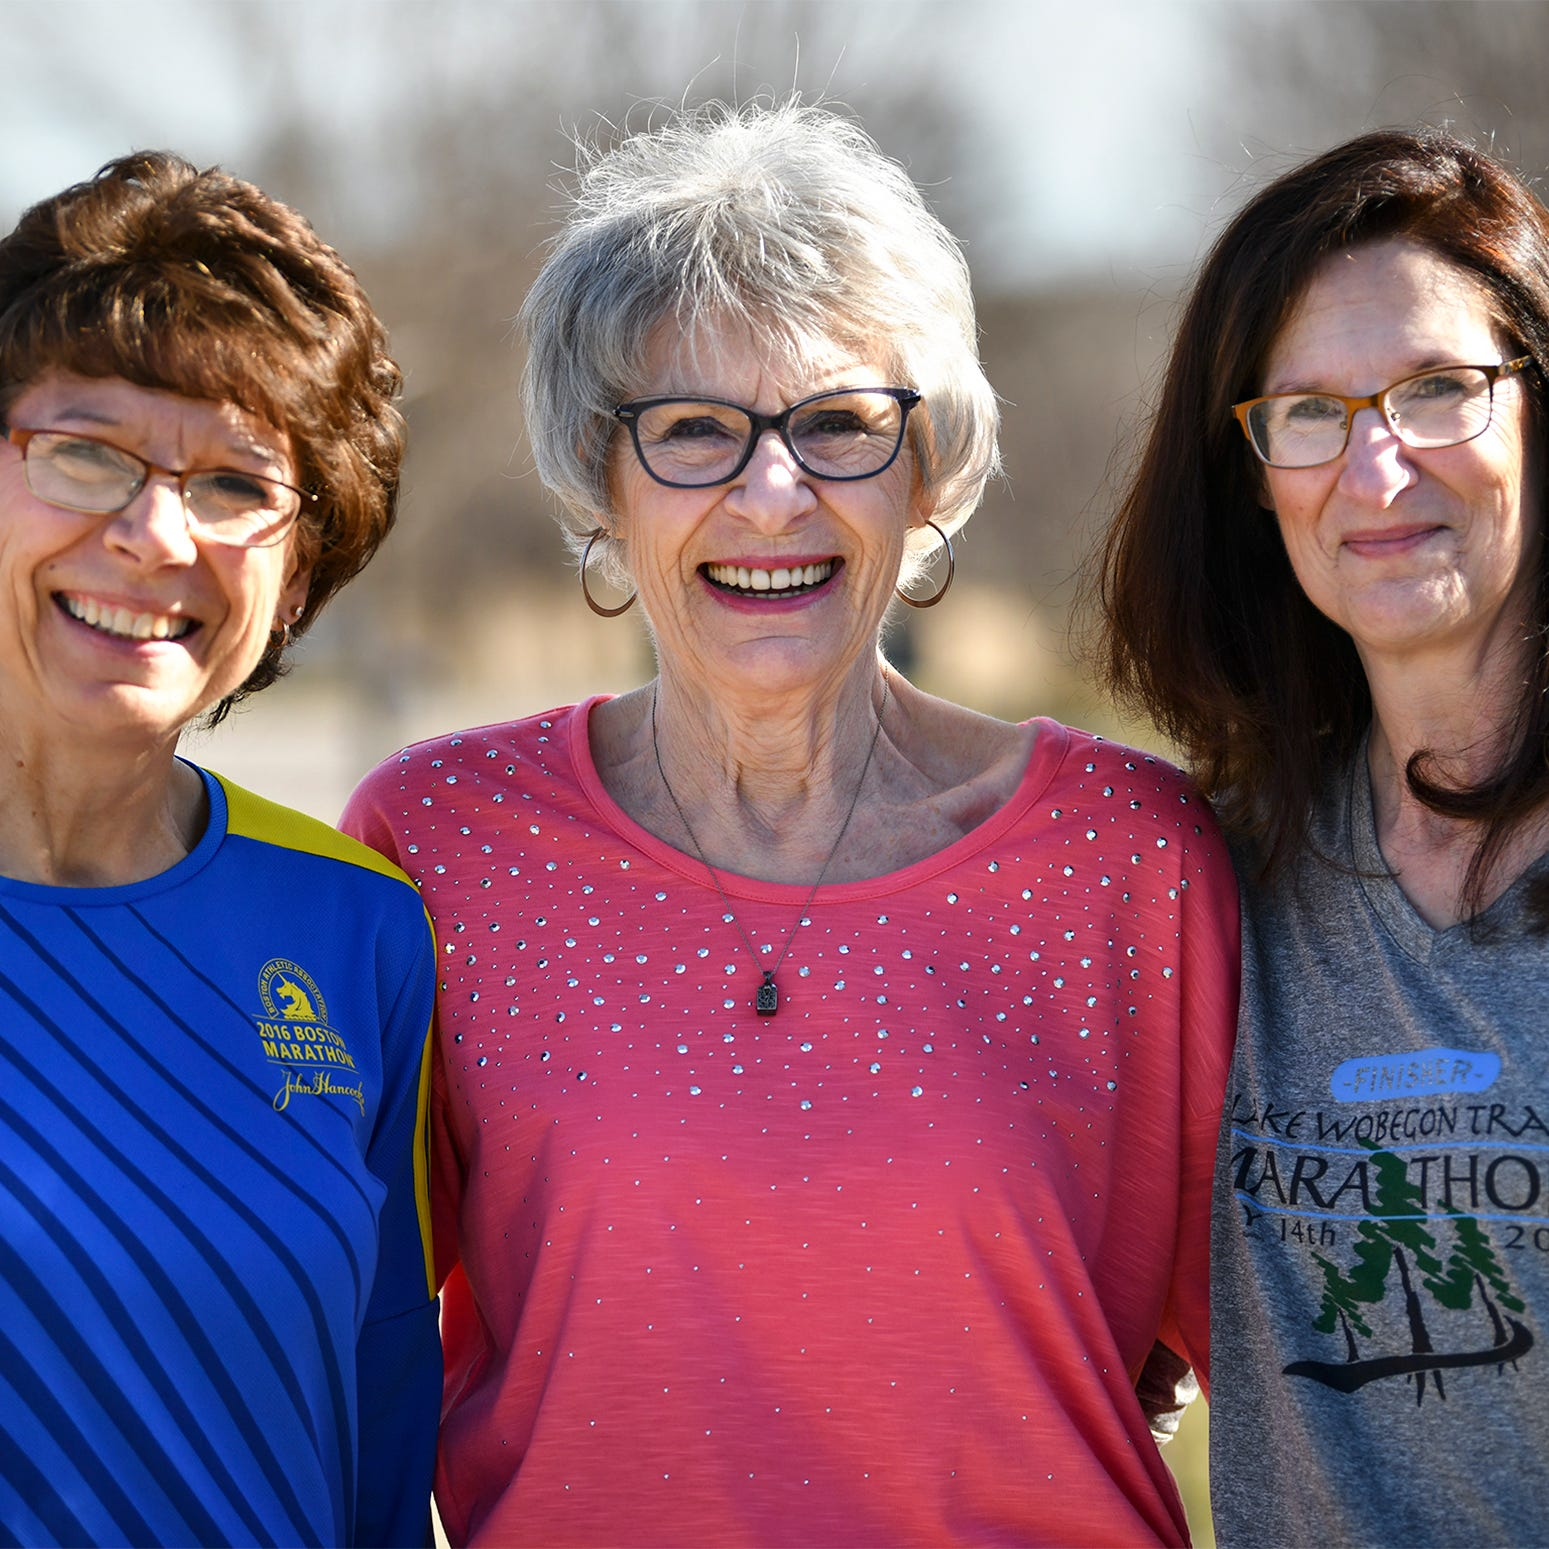 After heart surgery and inspiration from her daughters, this 73-year-old woman tries her first 5K